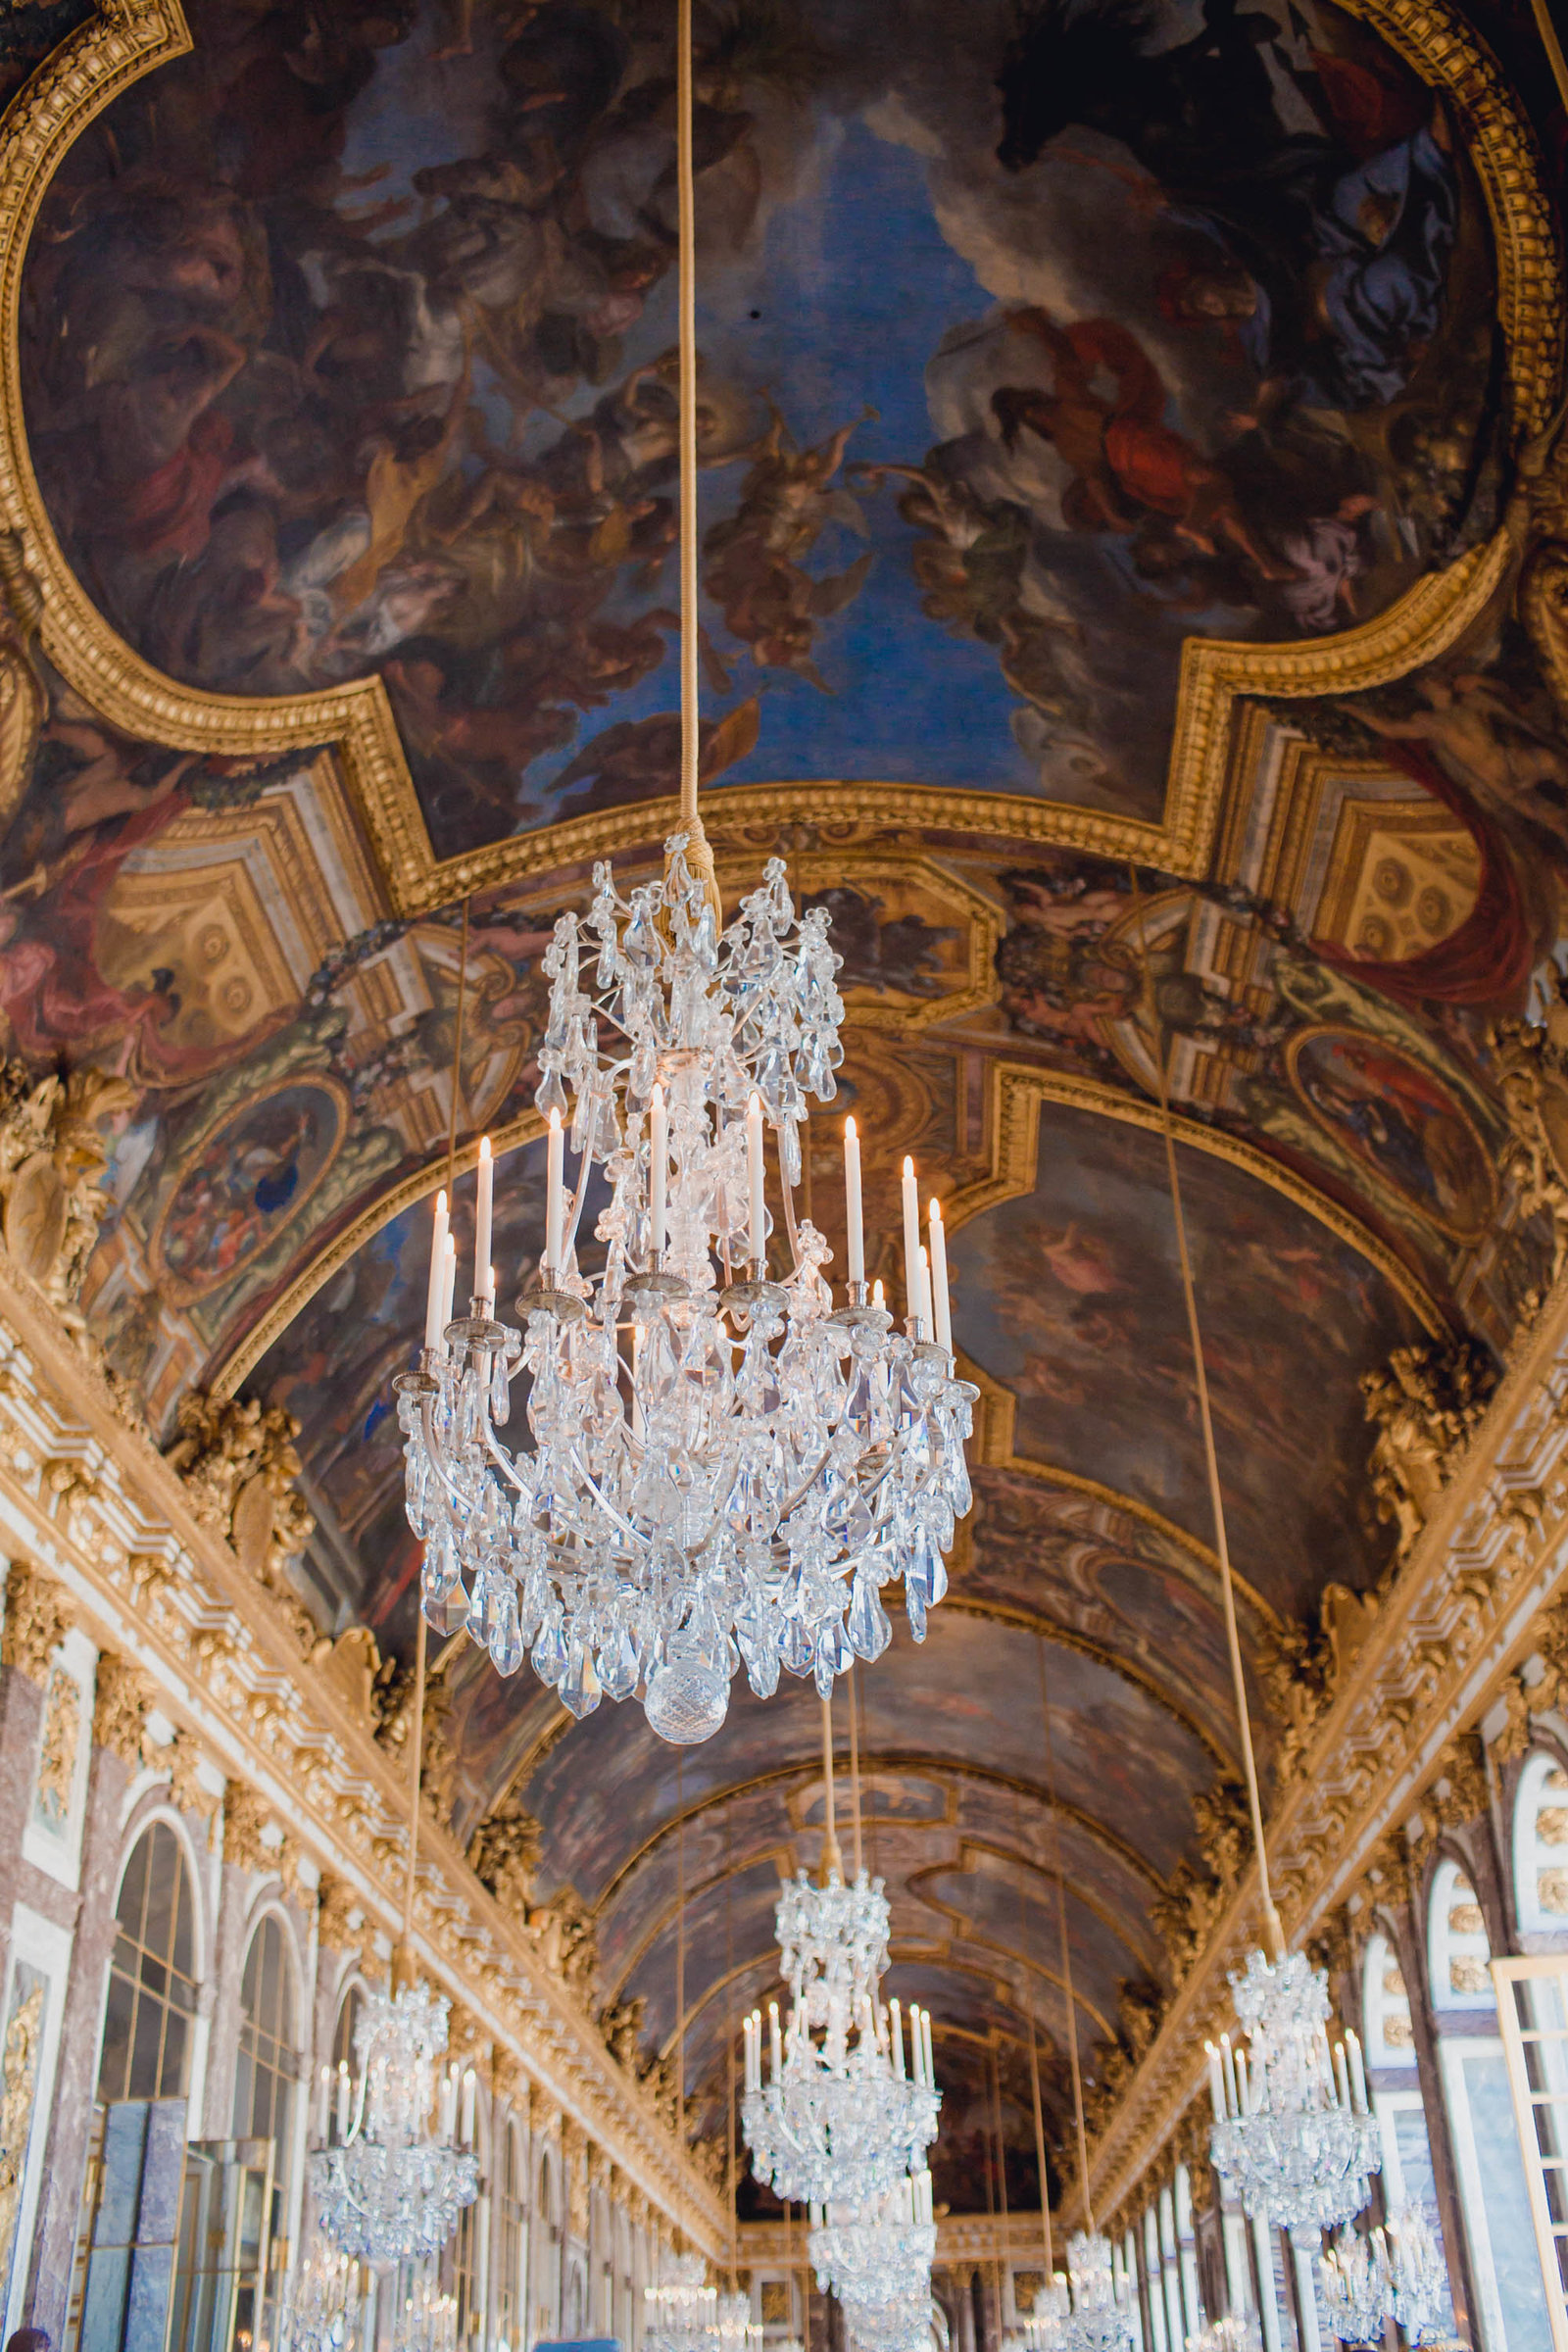 hall-mirrors-chandelier-palace-versailles-france-travel-destination-kate-timbers-photography-1656